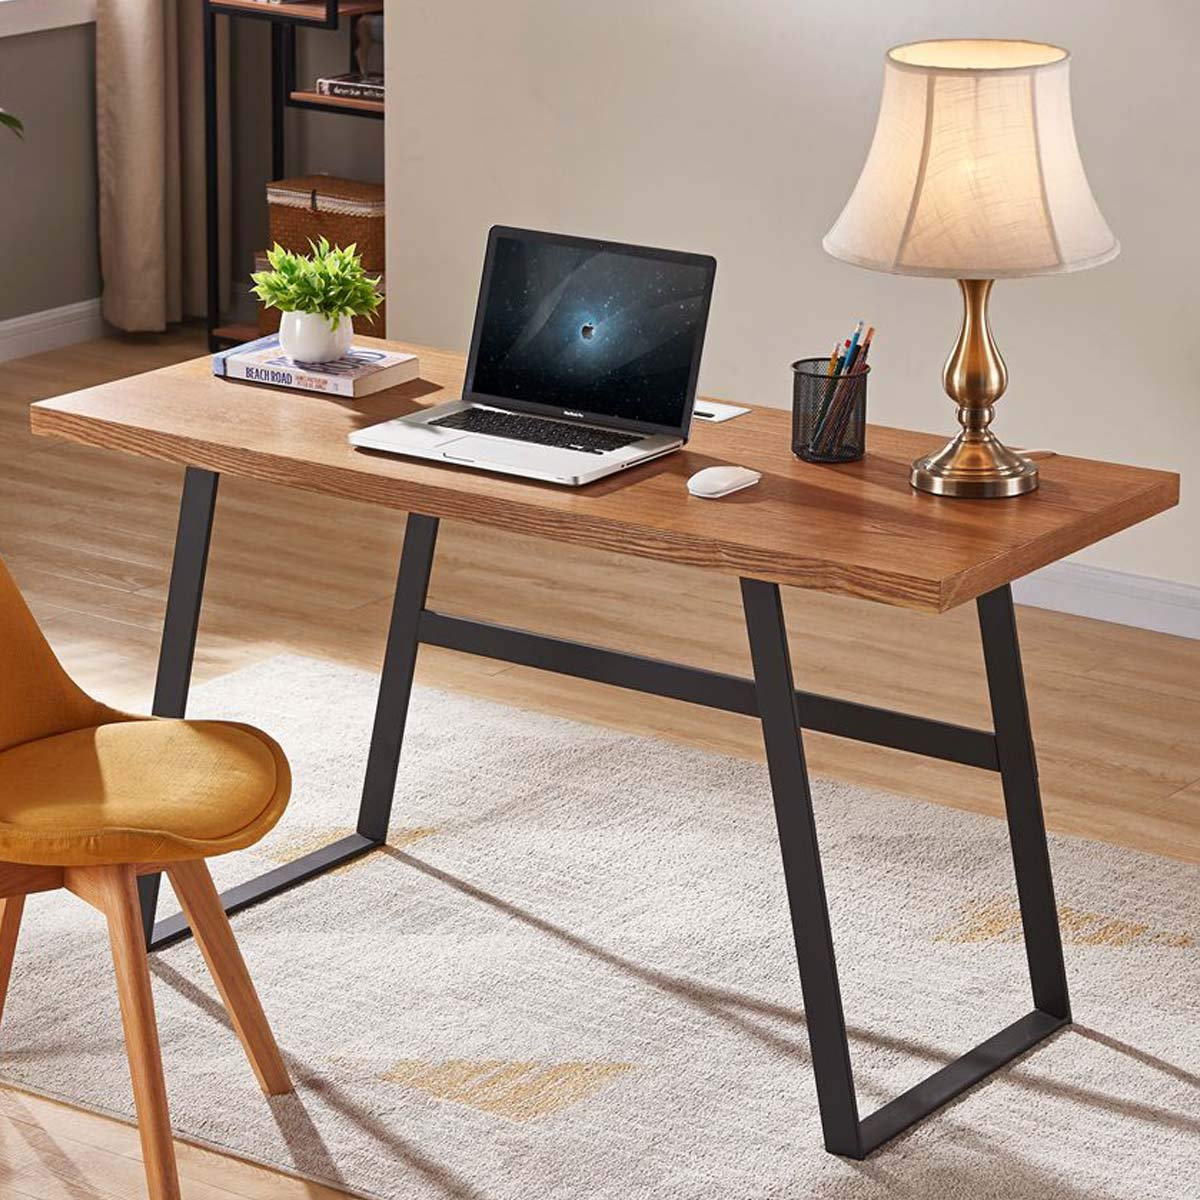 BON AUGURE Industrial Computer Desk For Home Office